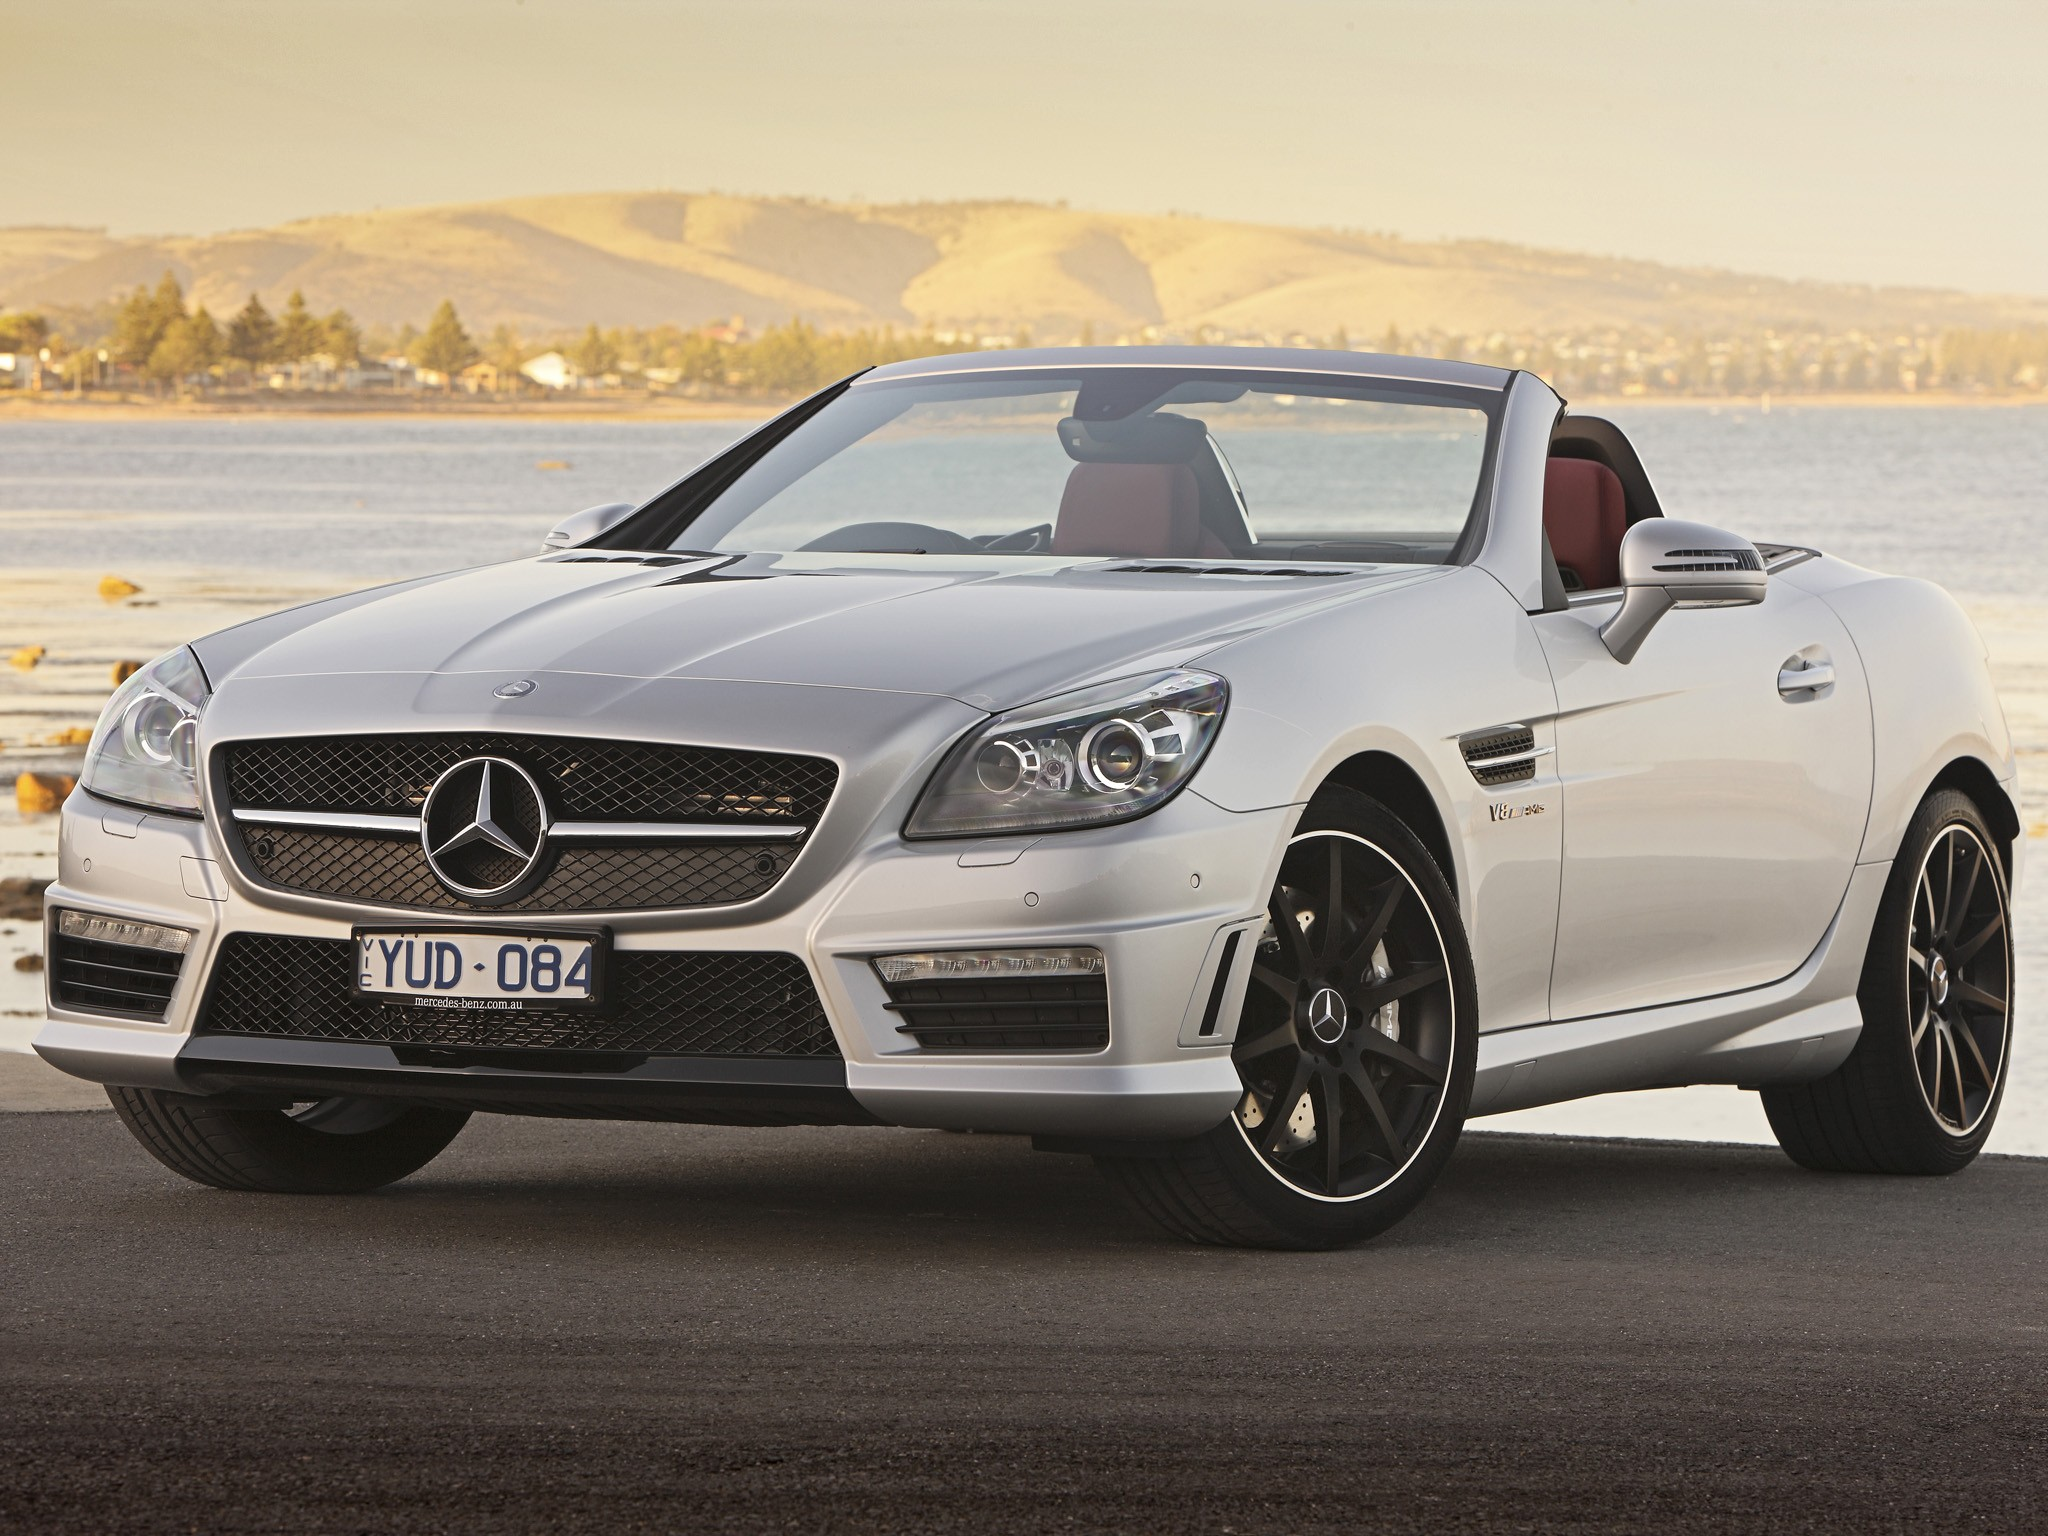 mercedes benz slk 55 amg r172 specs 2012 2013 2014 2015 2016 autoevolution. Black Bedroom Furniture Sets. Home Design Ideas